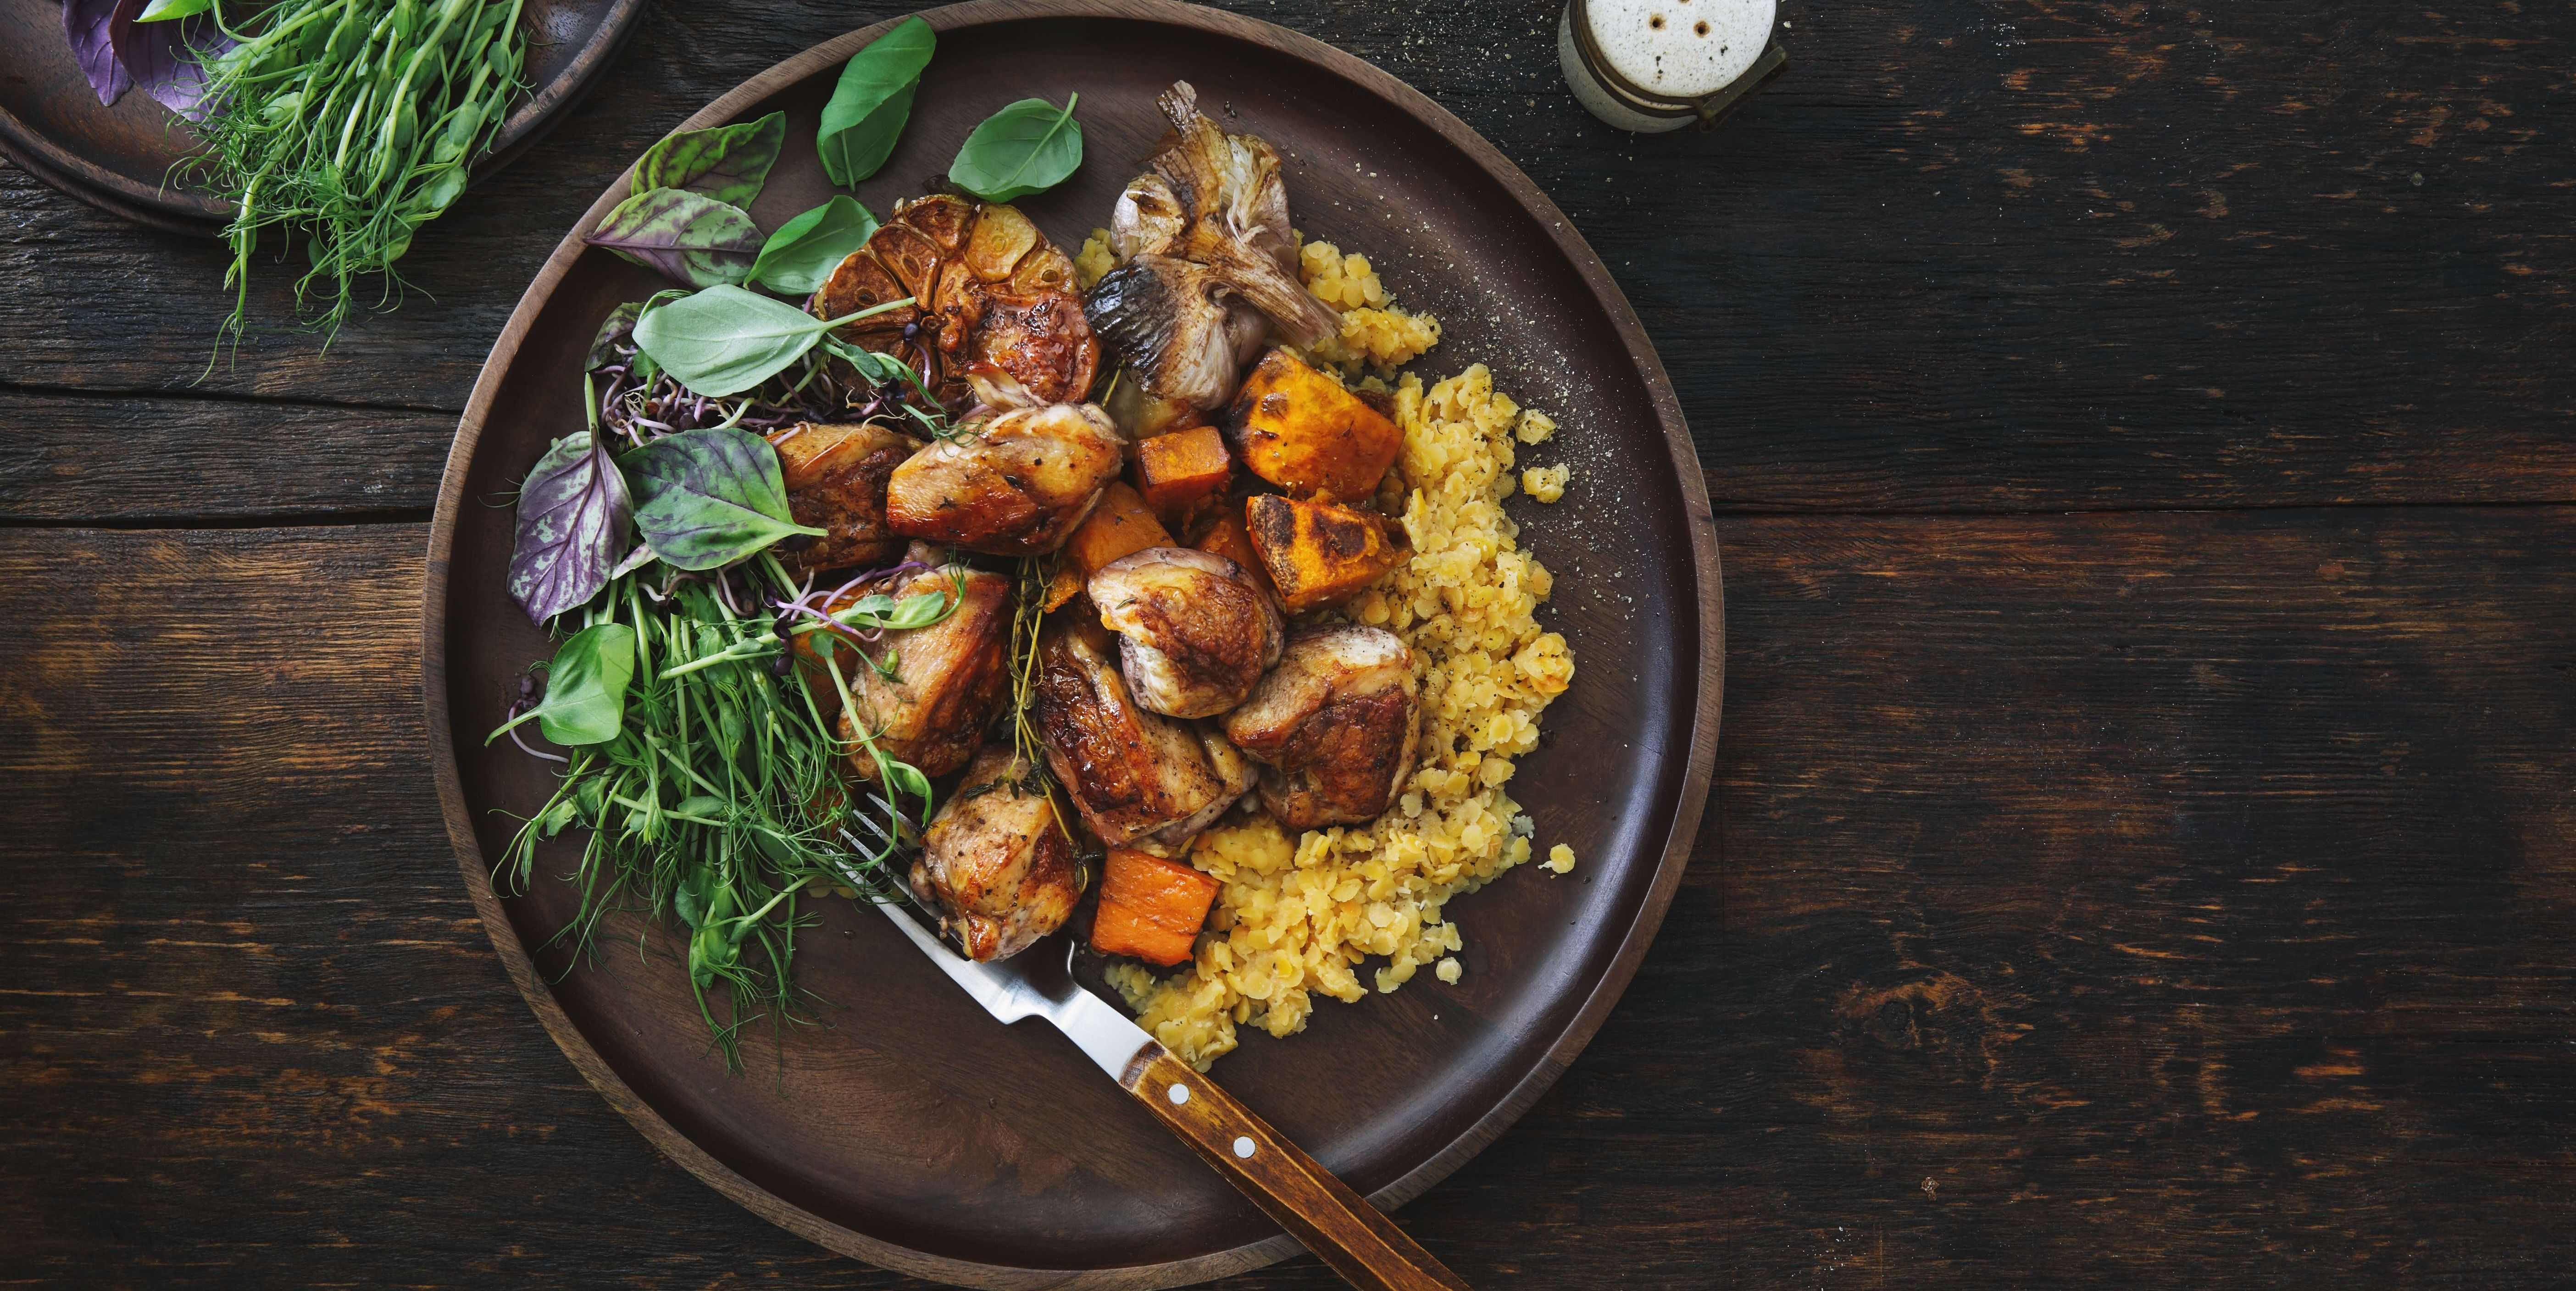 Roasted chicken with pumpkin and lentils